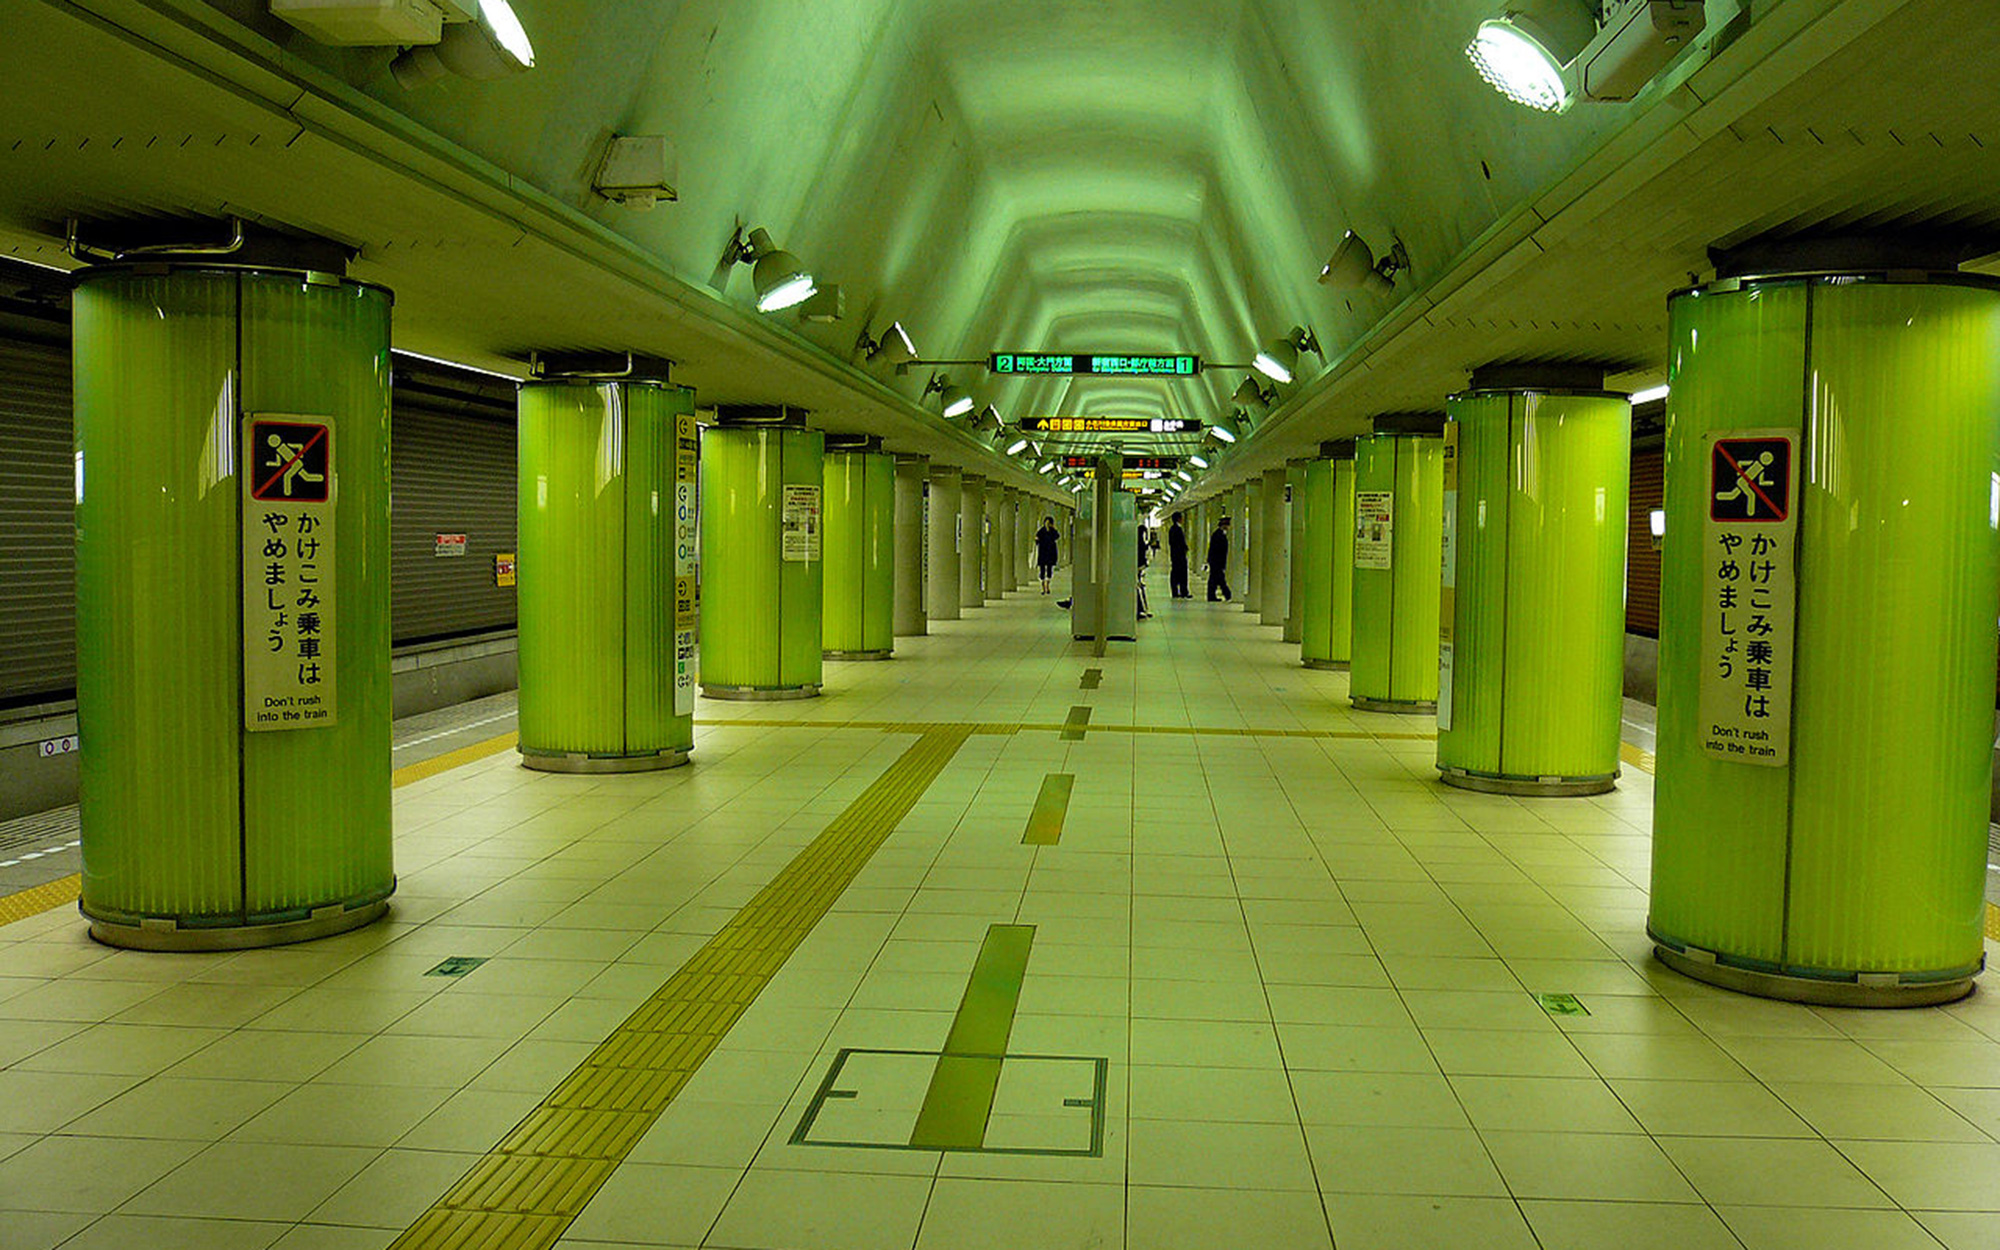 Ten Eye-Catching Metro Stations Worth a Stop